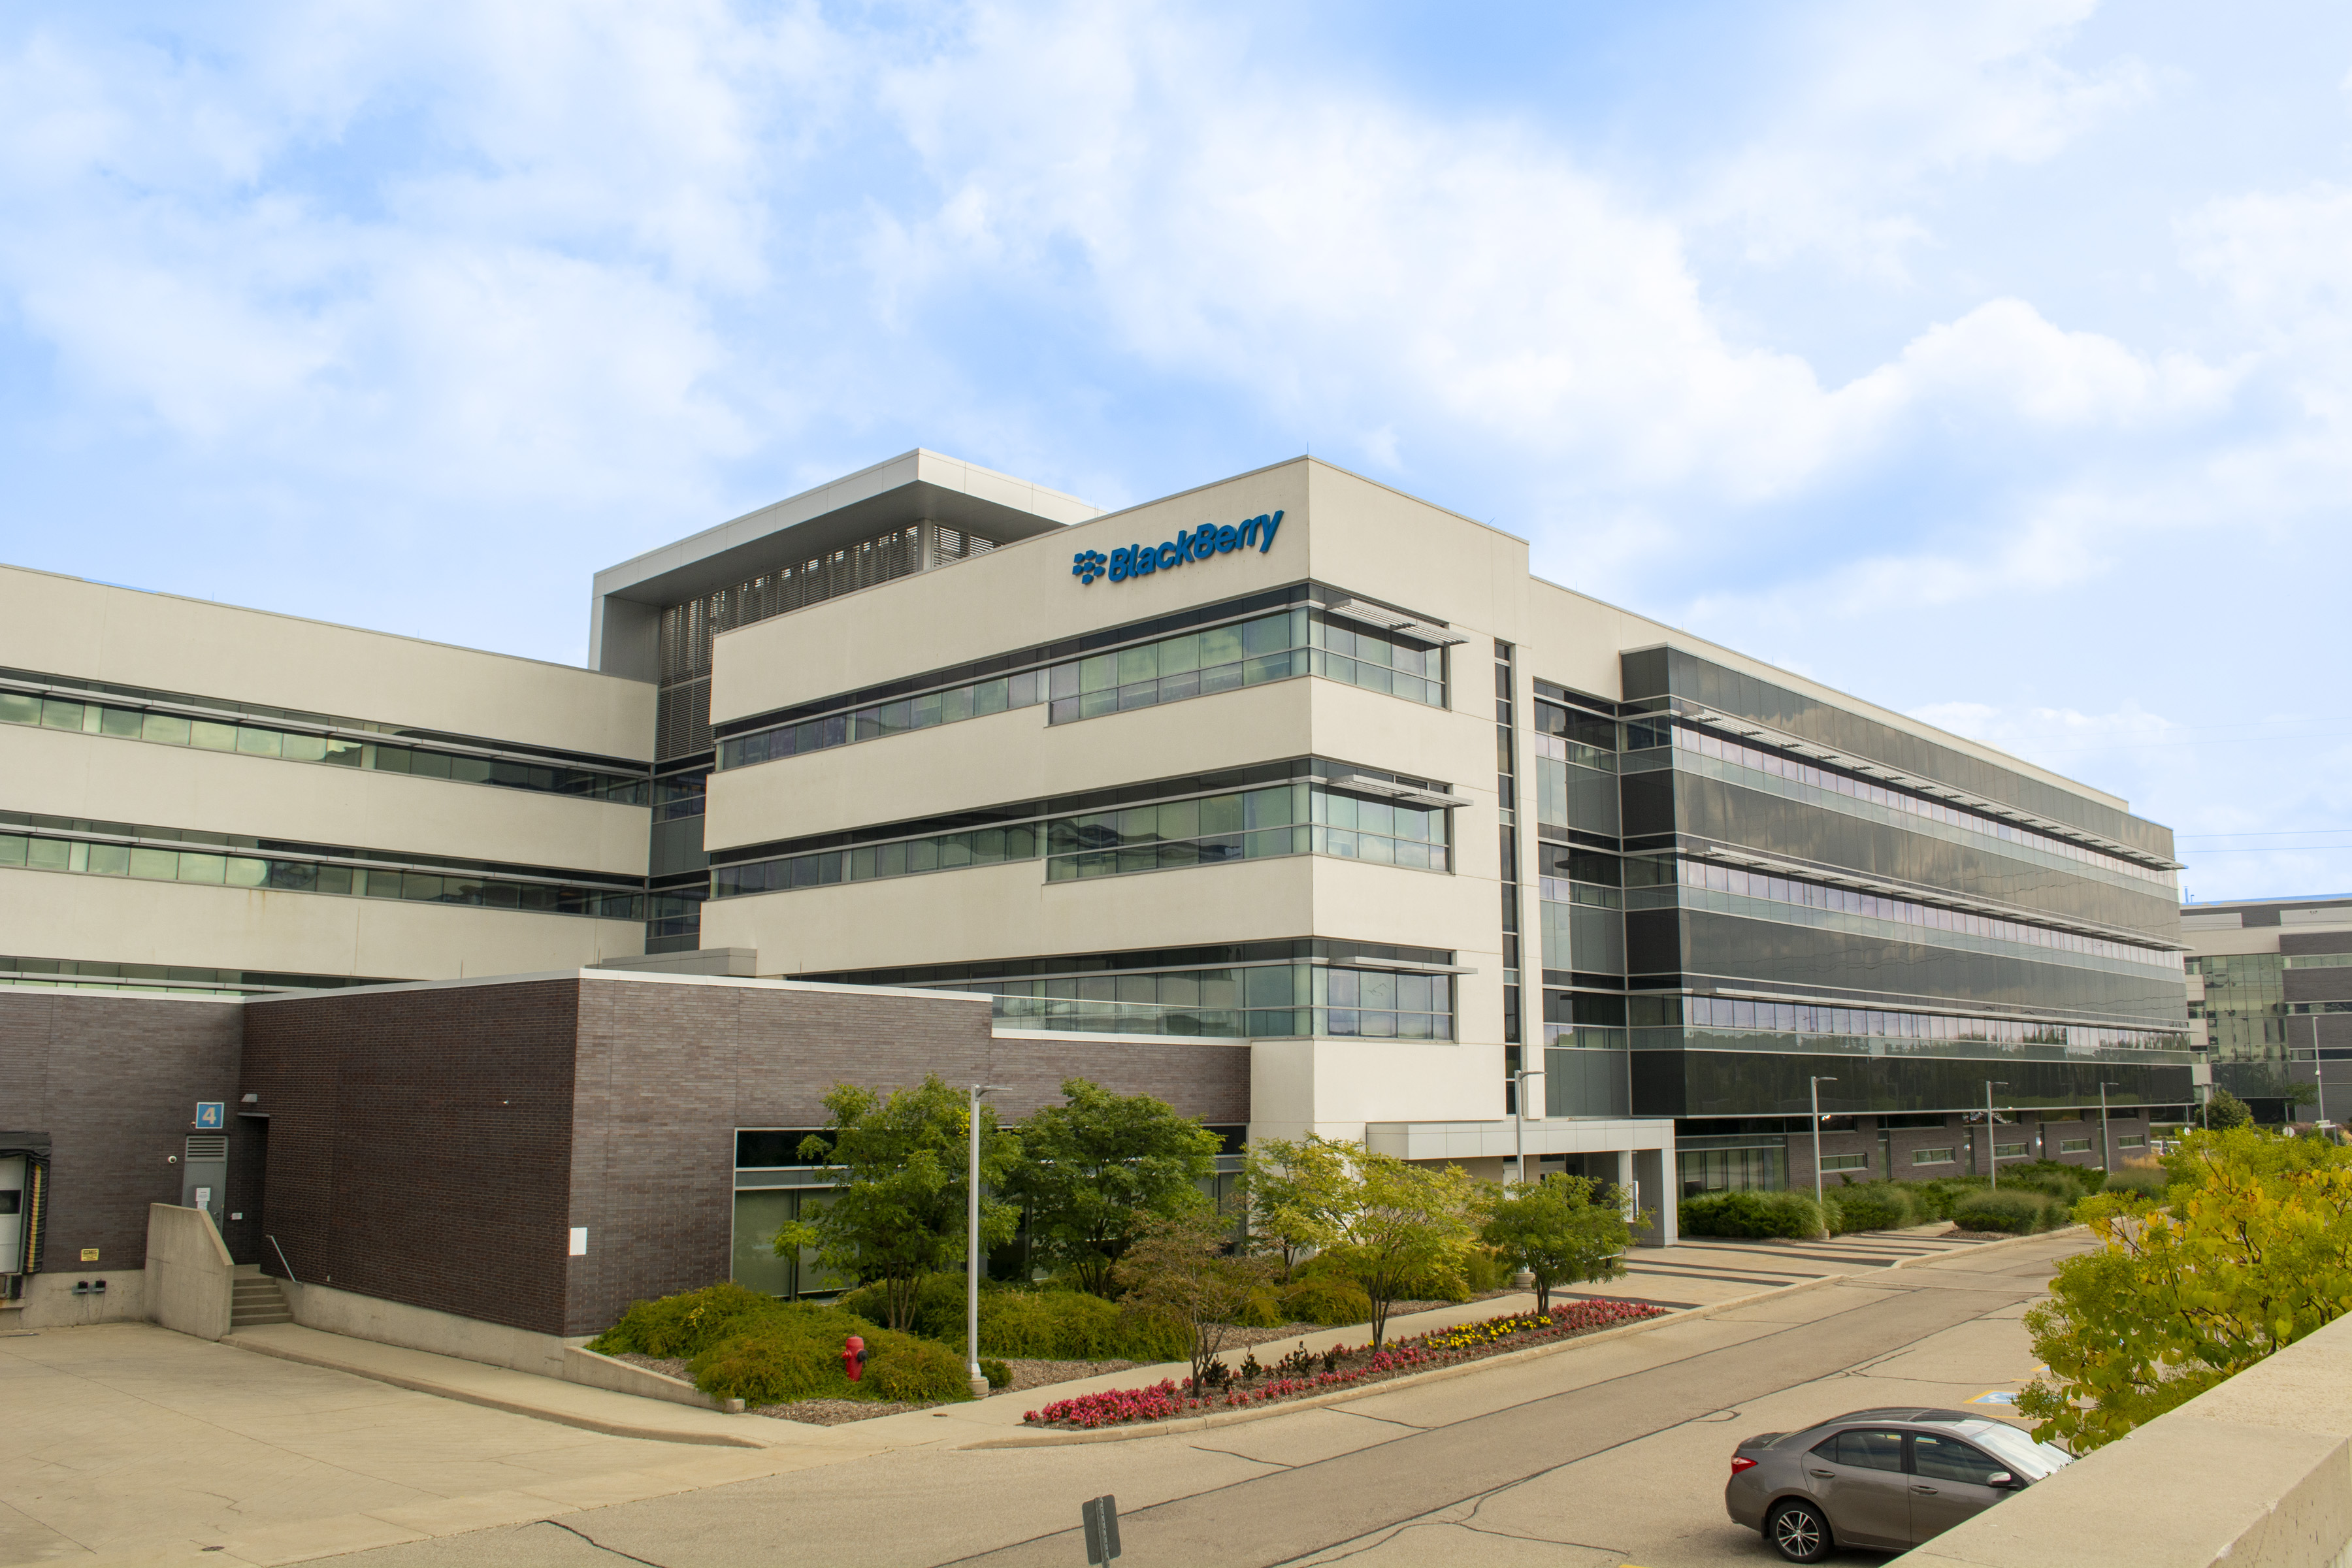 Blackberry, 2300 University Ave, (2nd & 4th Floor), Waterloo   Office Space for Sublease